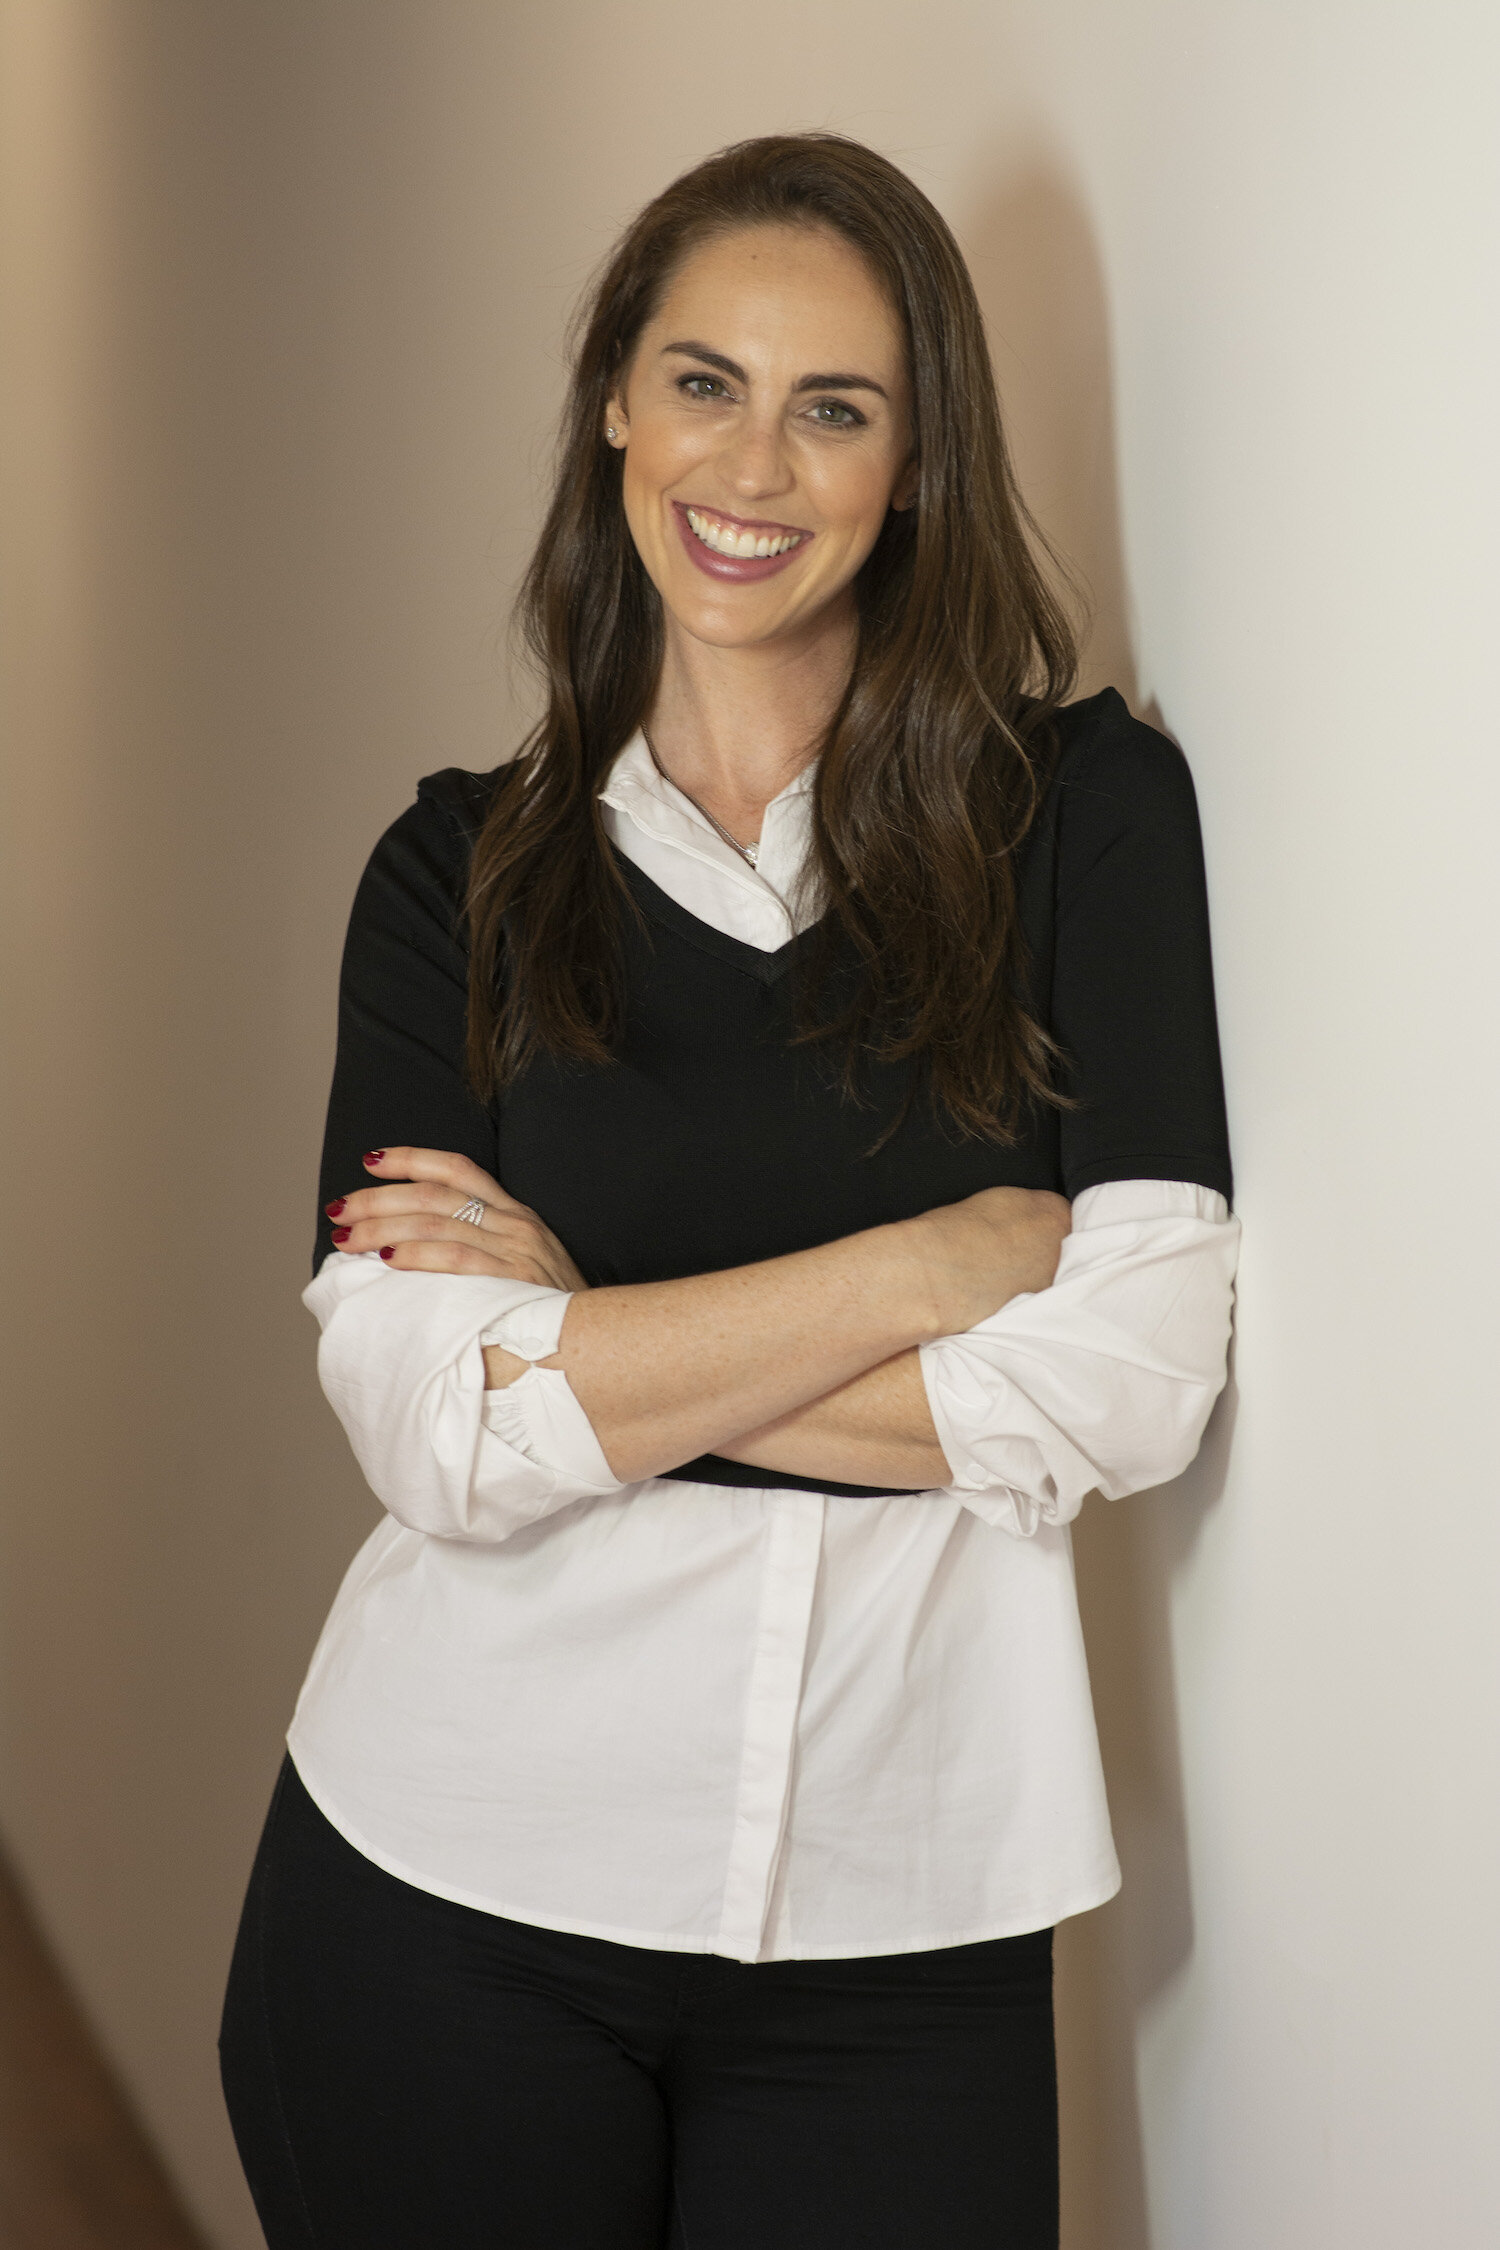 Dr. Margolis is a clinical psychologist committed to helping her clients make contact with the truest version of themselves. She is energized by supporting women as they discover their core values in order to live authentically and deeply. She loves supporting clients in realizing their full potential and letting their inner wisdom lead them to more balanced, more meaningful, and fuller lives.  CLICK FOR FULL BIO ▶️